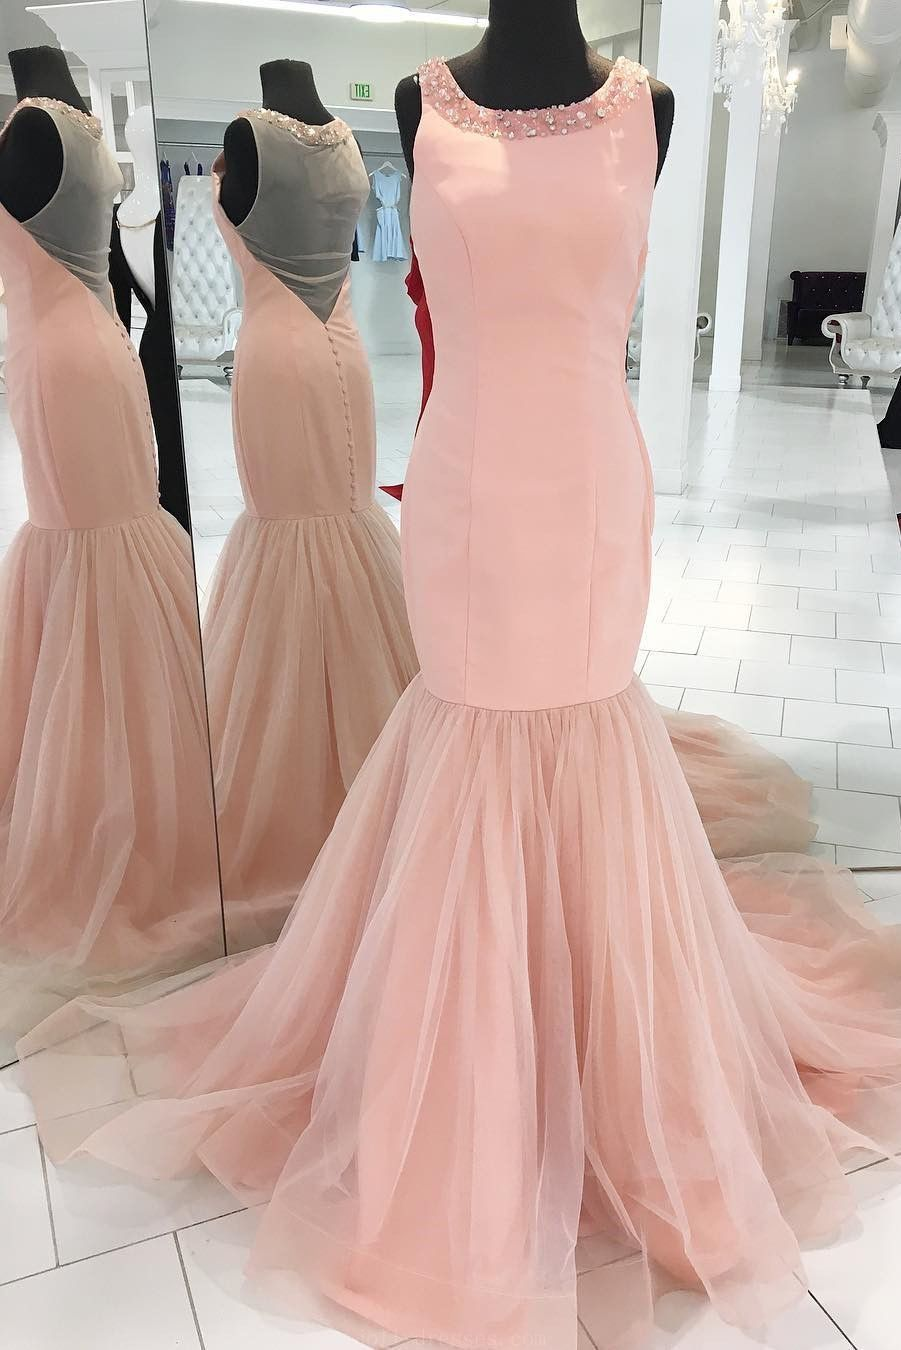 Customized trendy prom dresses prom dresses pink prom dresses